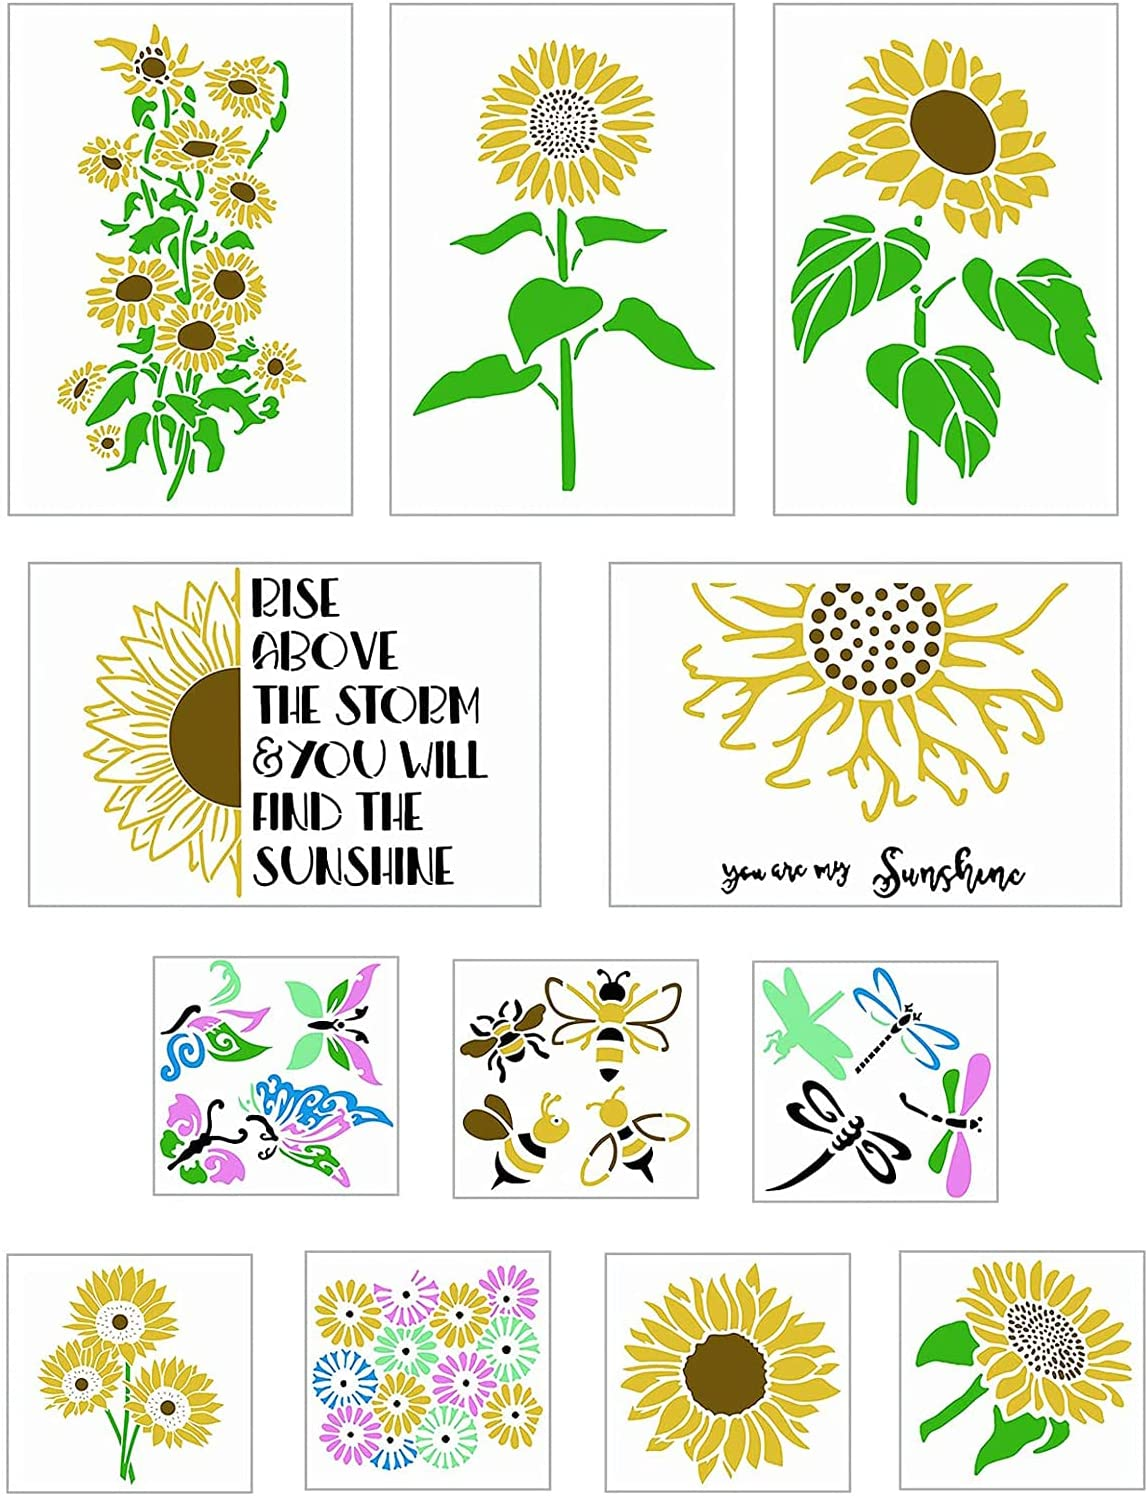 lumflew Sunflower Stencils 12 Pieces, Flower Butterfly Bee Stencils for Painting On Wood Canvas Walls Paper Fabric Furniture